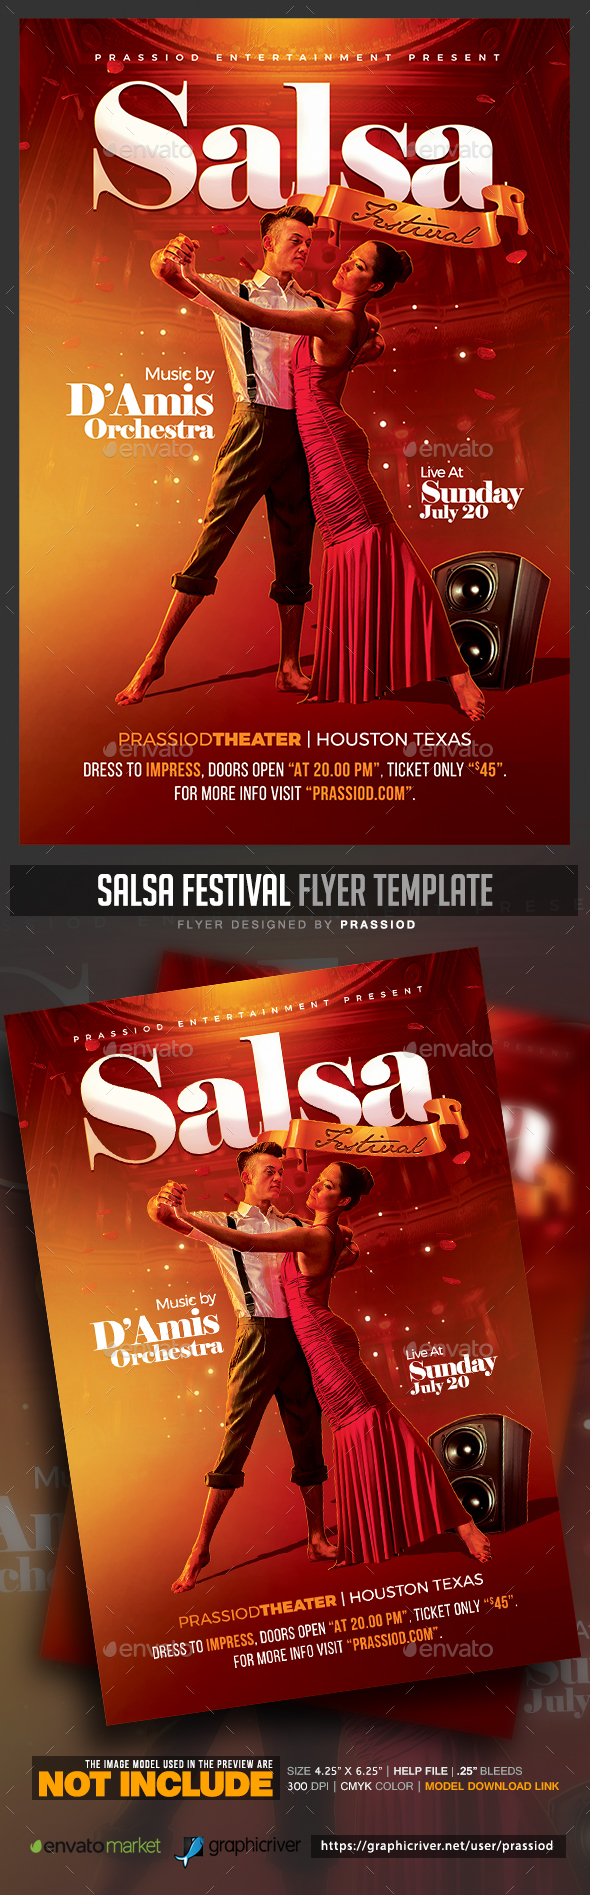 Salsa Festival Flyer Template - Clubs & Parties Events